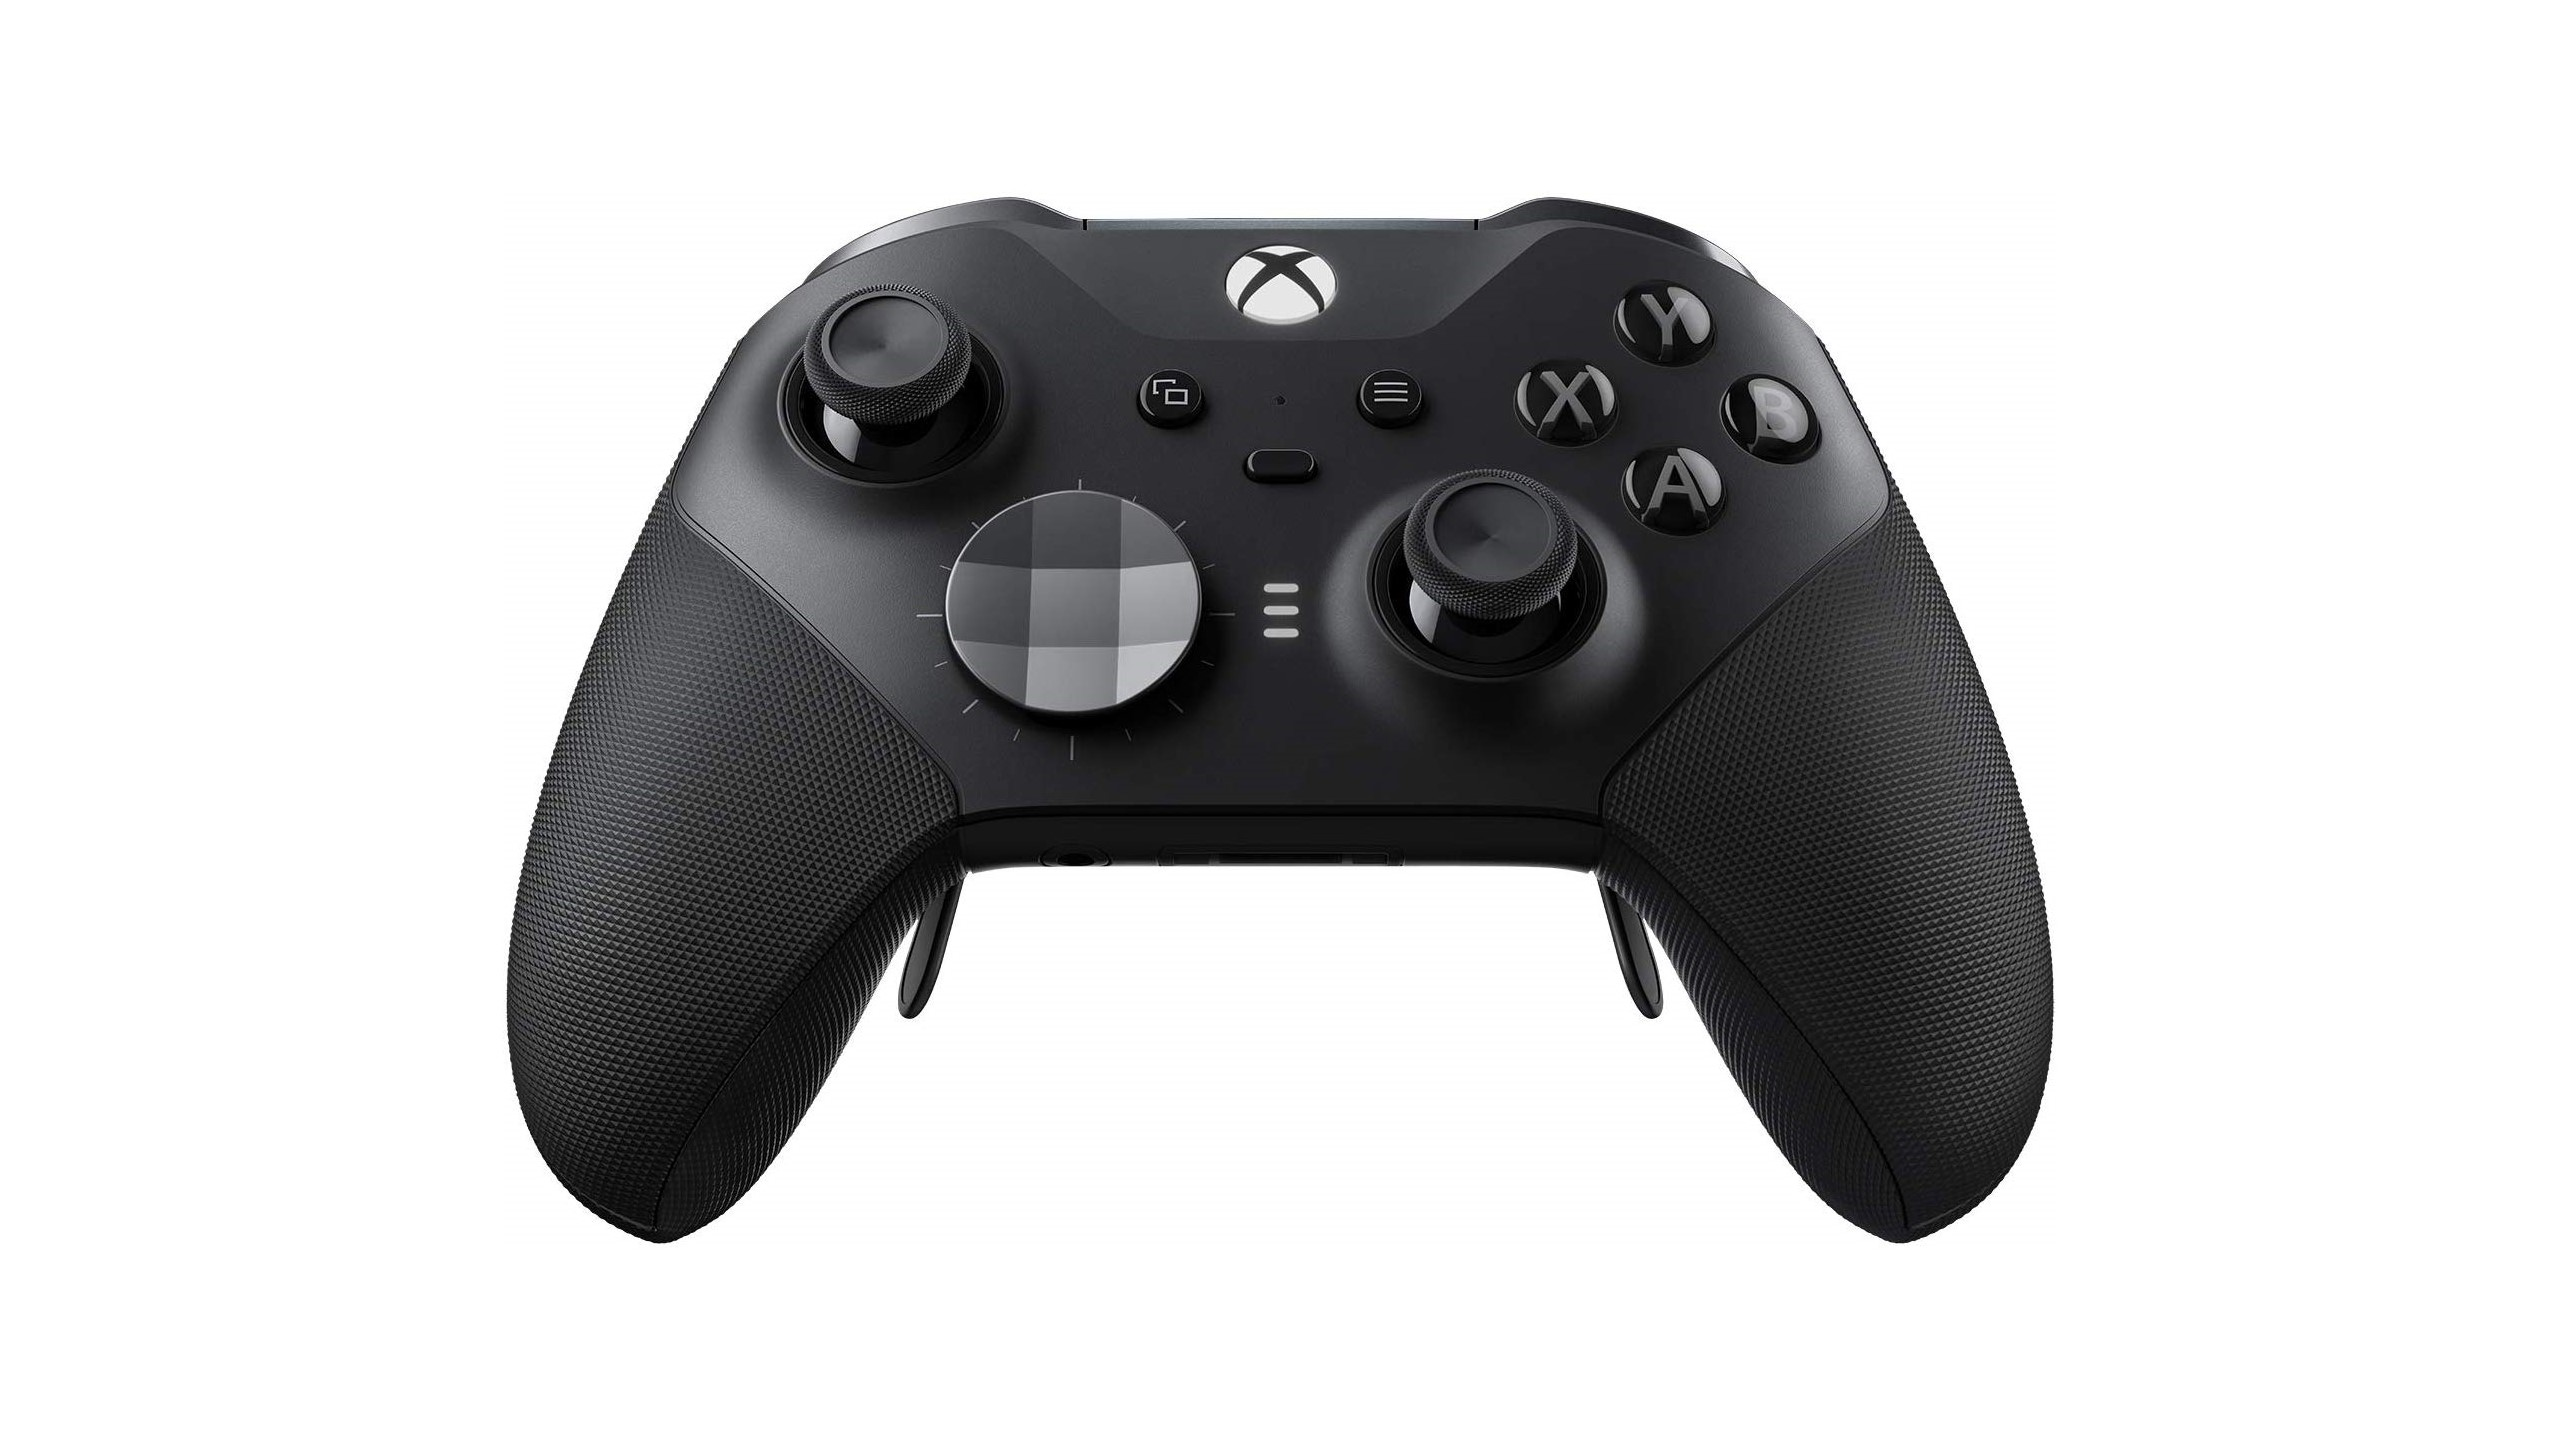 Best PC game controllers: Xbox Elite Wireless Controller